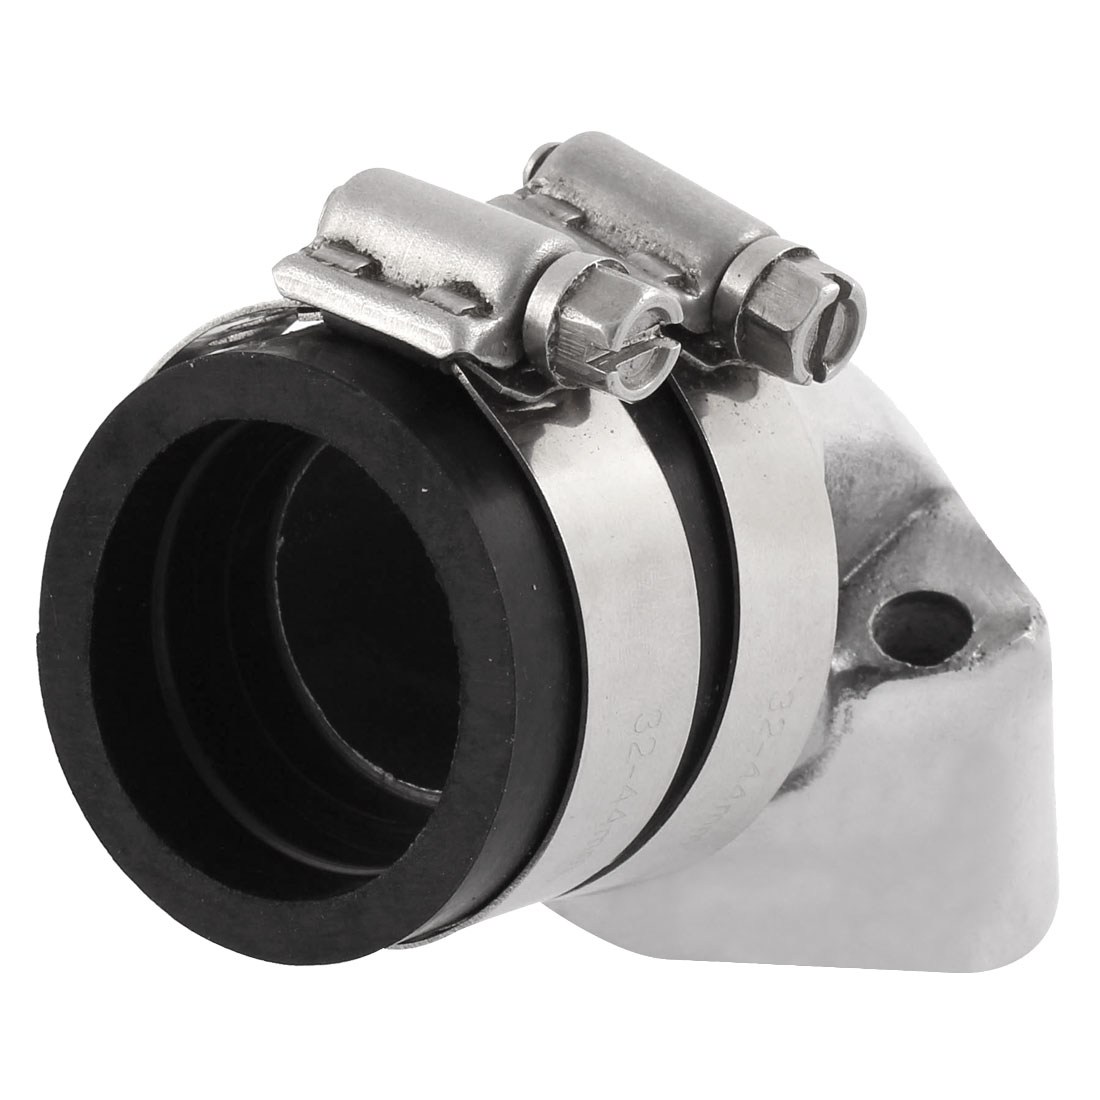 32mm Inner Dia Sliver Tone Carburetor Air Intake Manifold Repalcement for Motorcycle Scooter